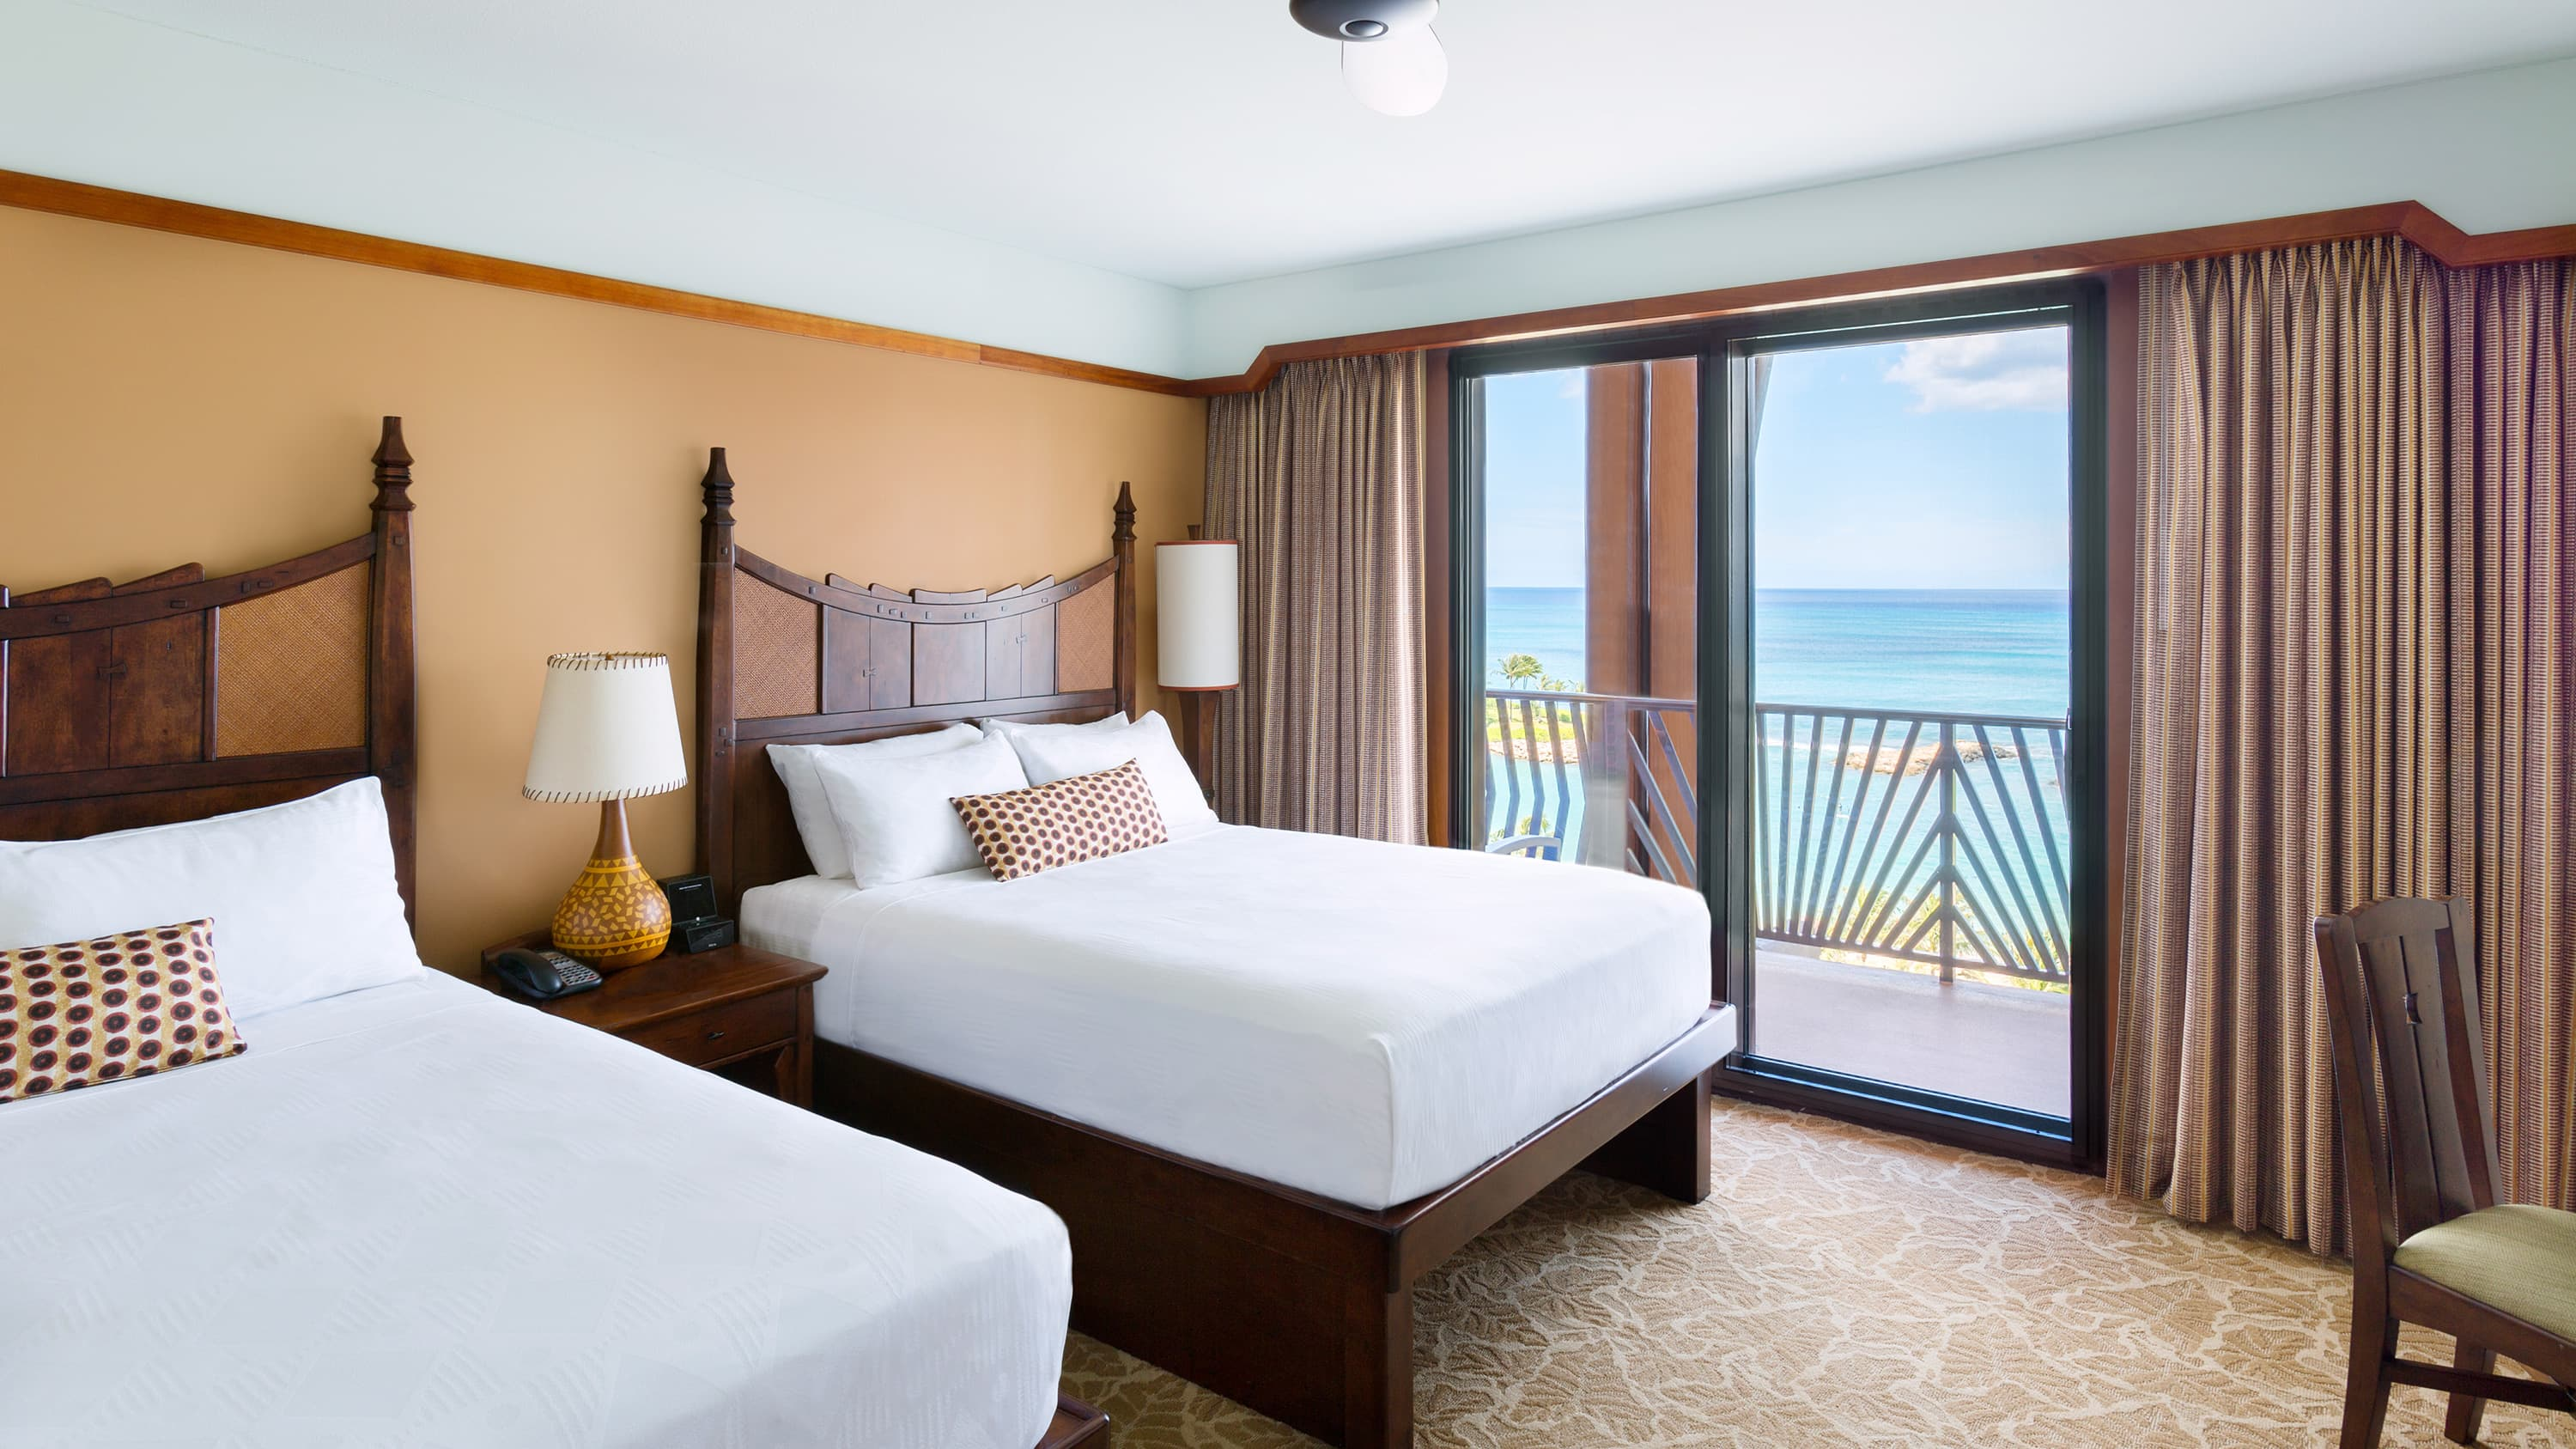 A king bed opposite a dresser with flat-panel TV and a table and chair, with an ocean view balcony beyond